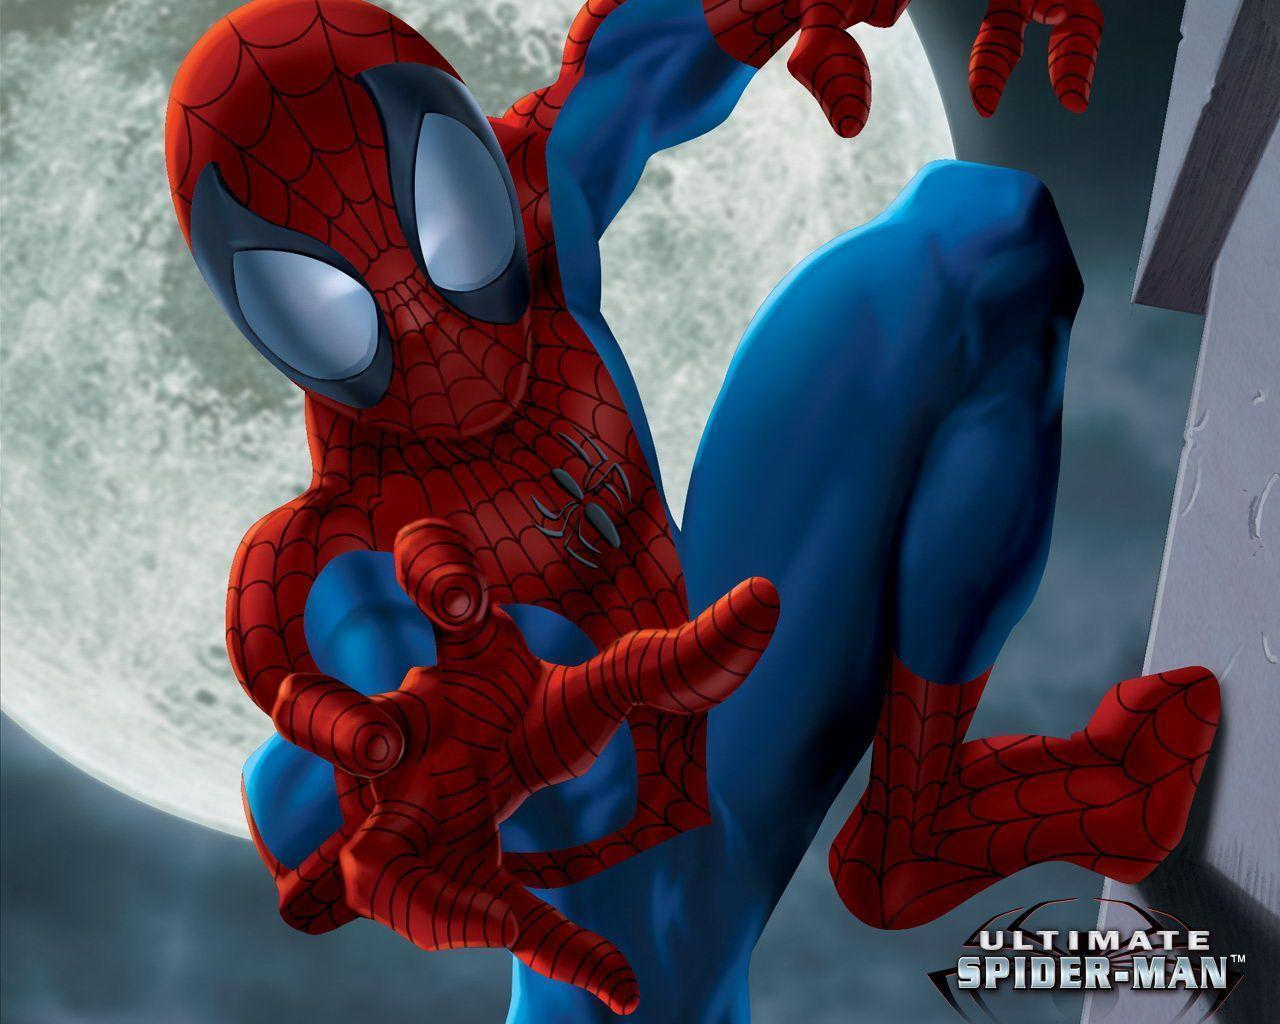 Ultimate Spider-Man – Wallpaper Gallery